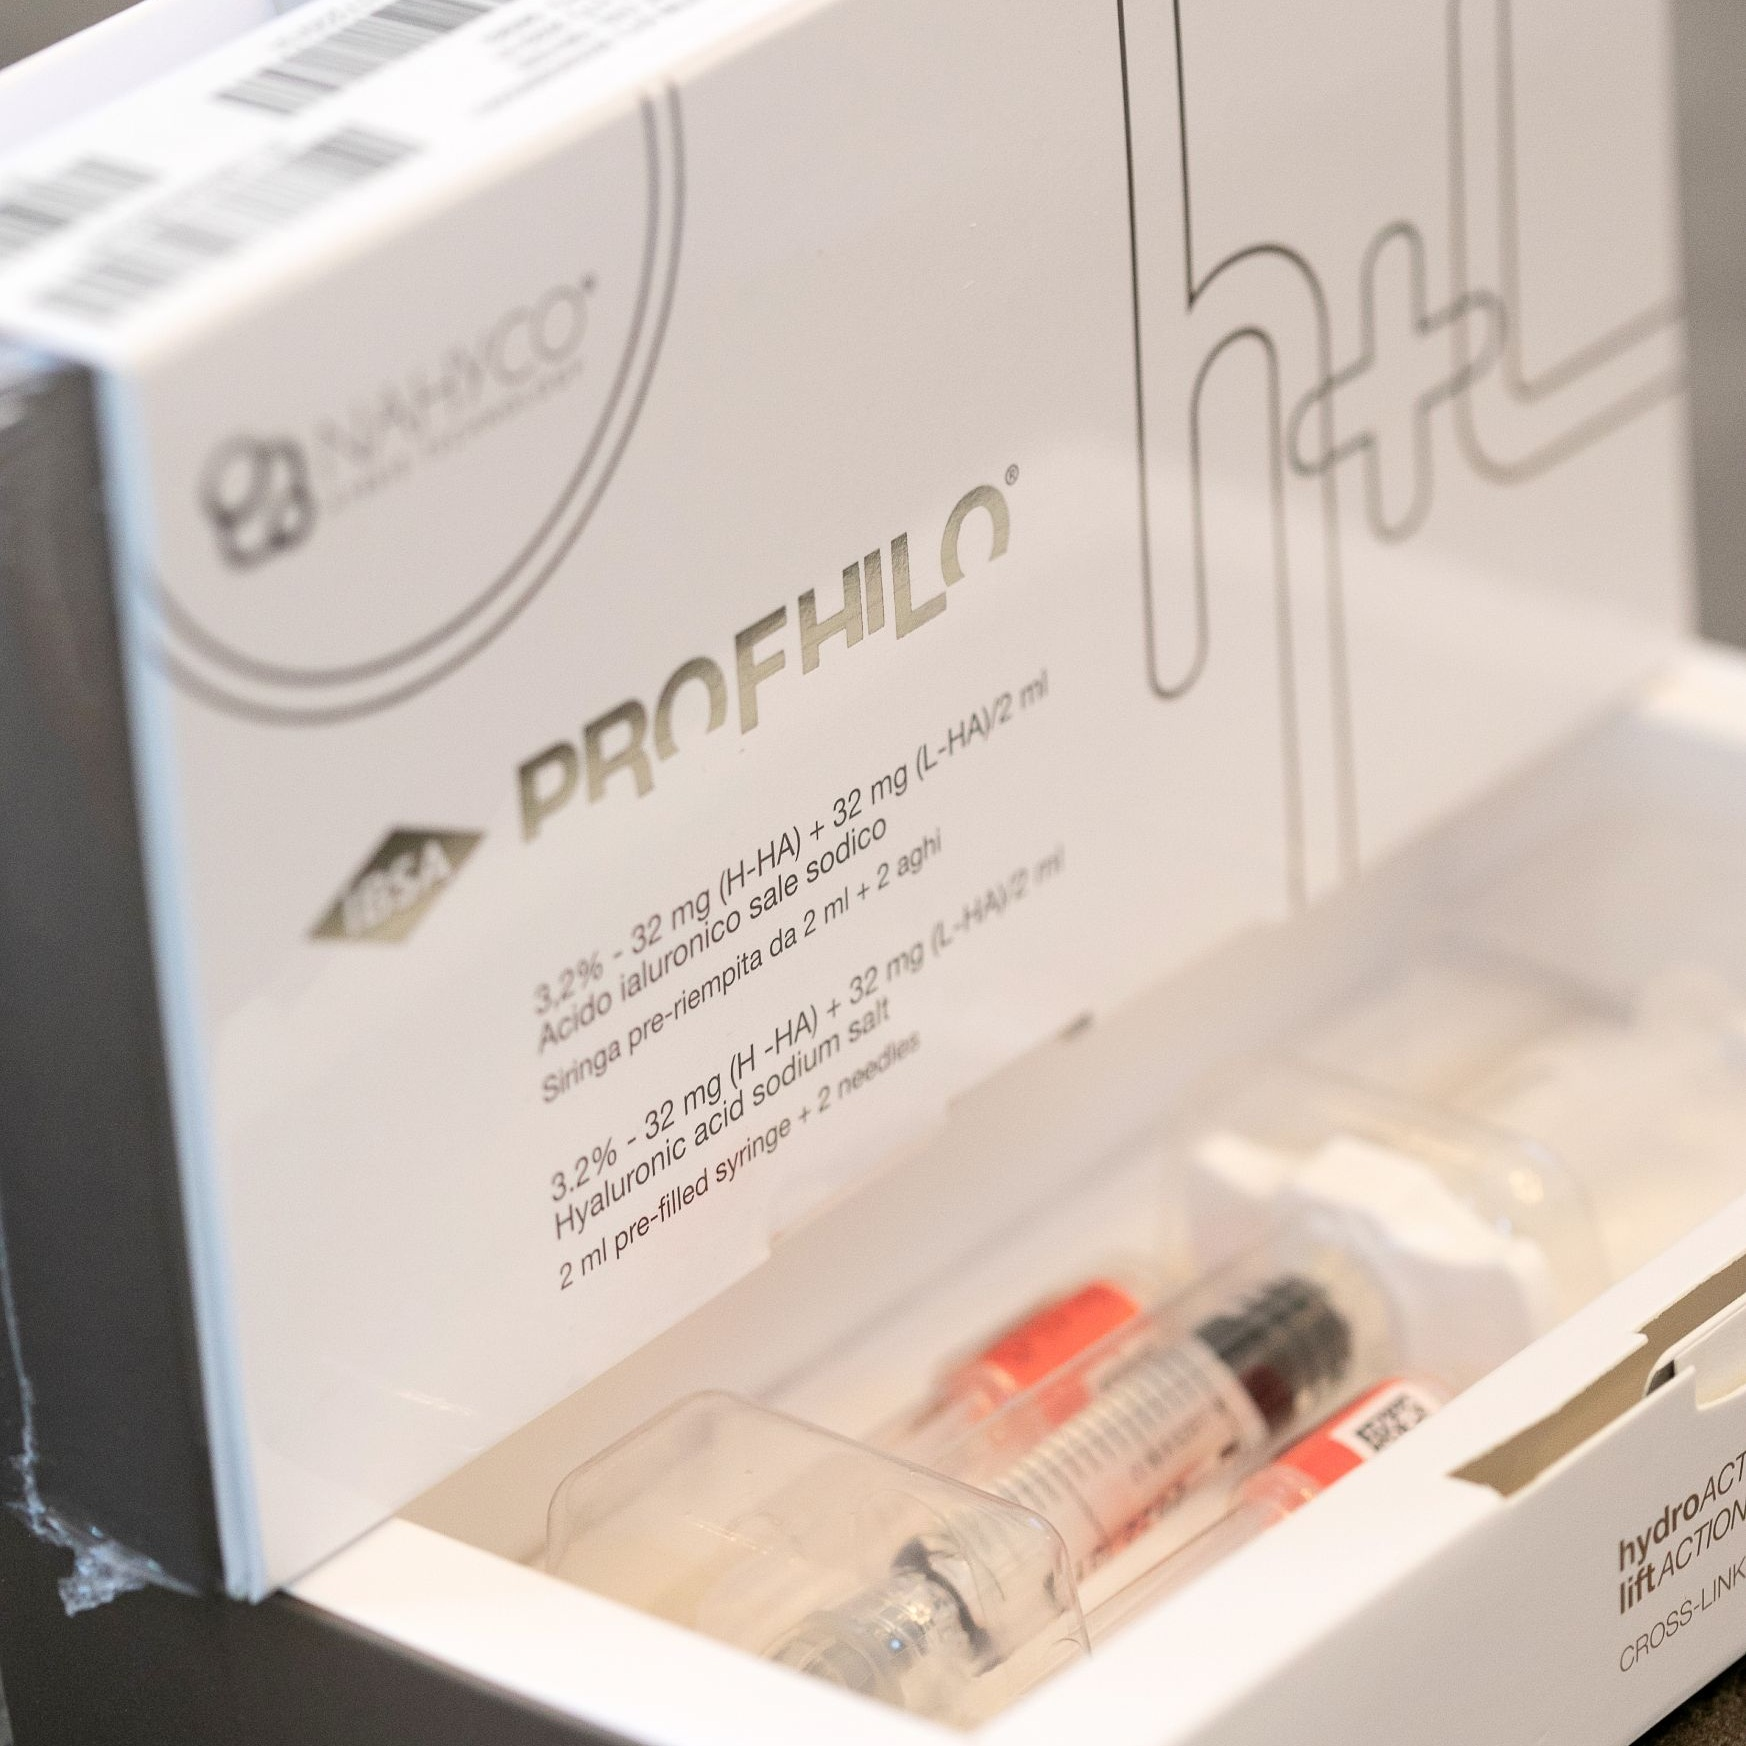 profhilo treatment - Stimulates the production of collagen and elastin, improving skin tone, hydration and the appearance of fine lines for up to 6 months.